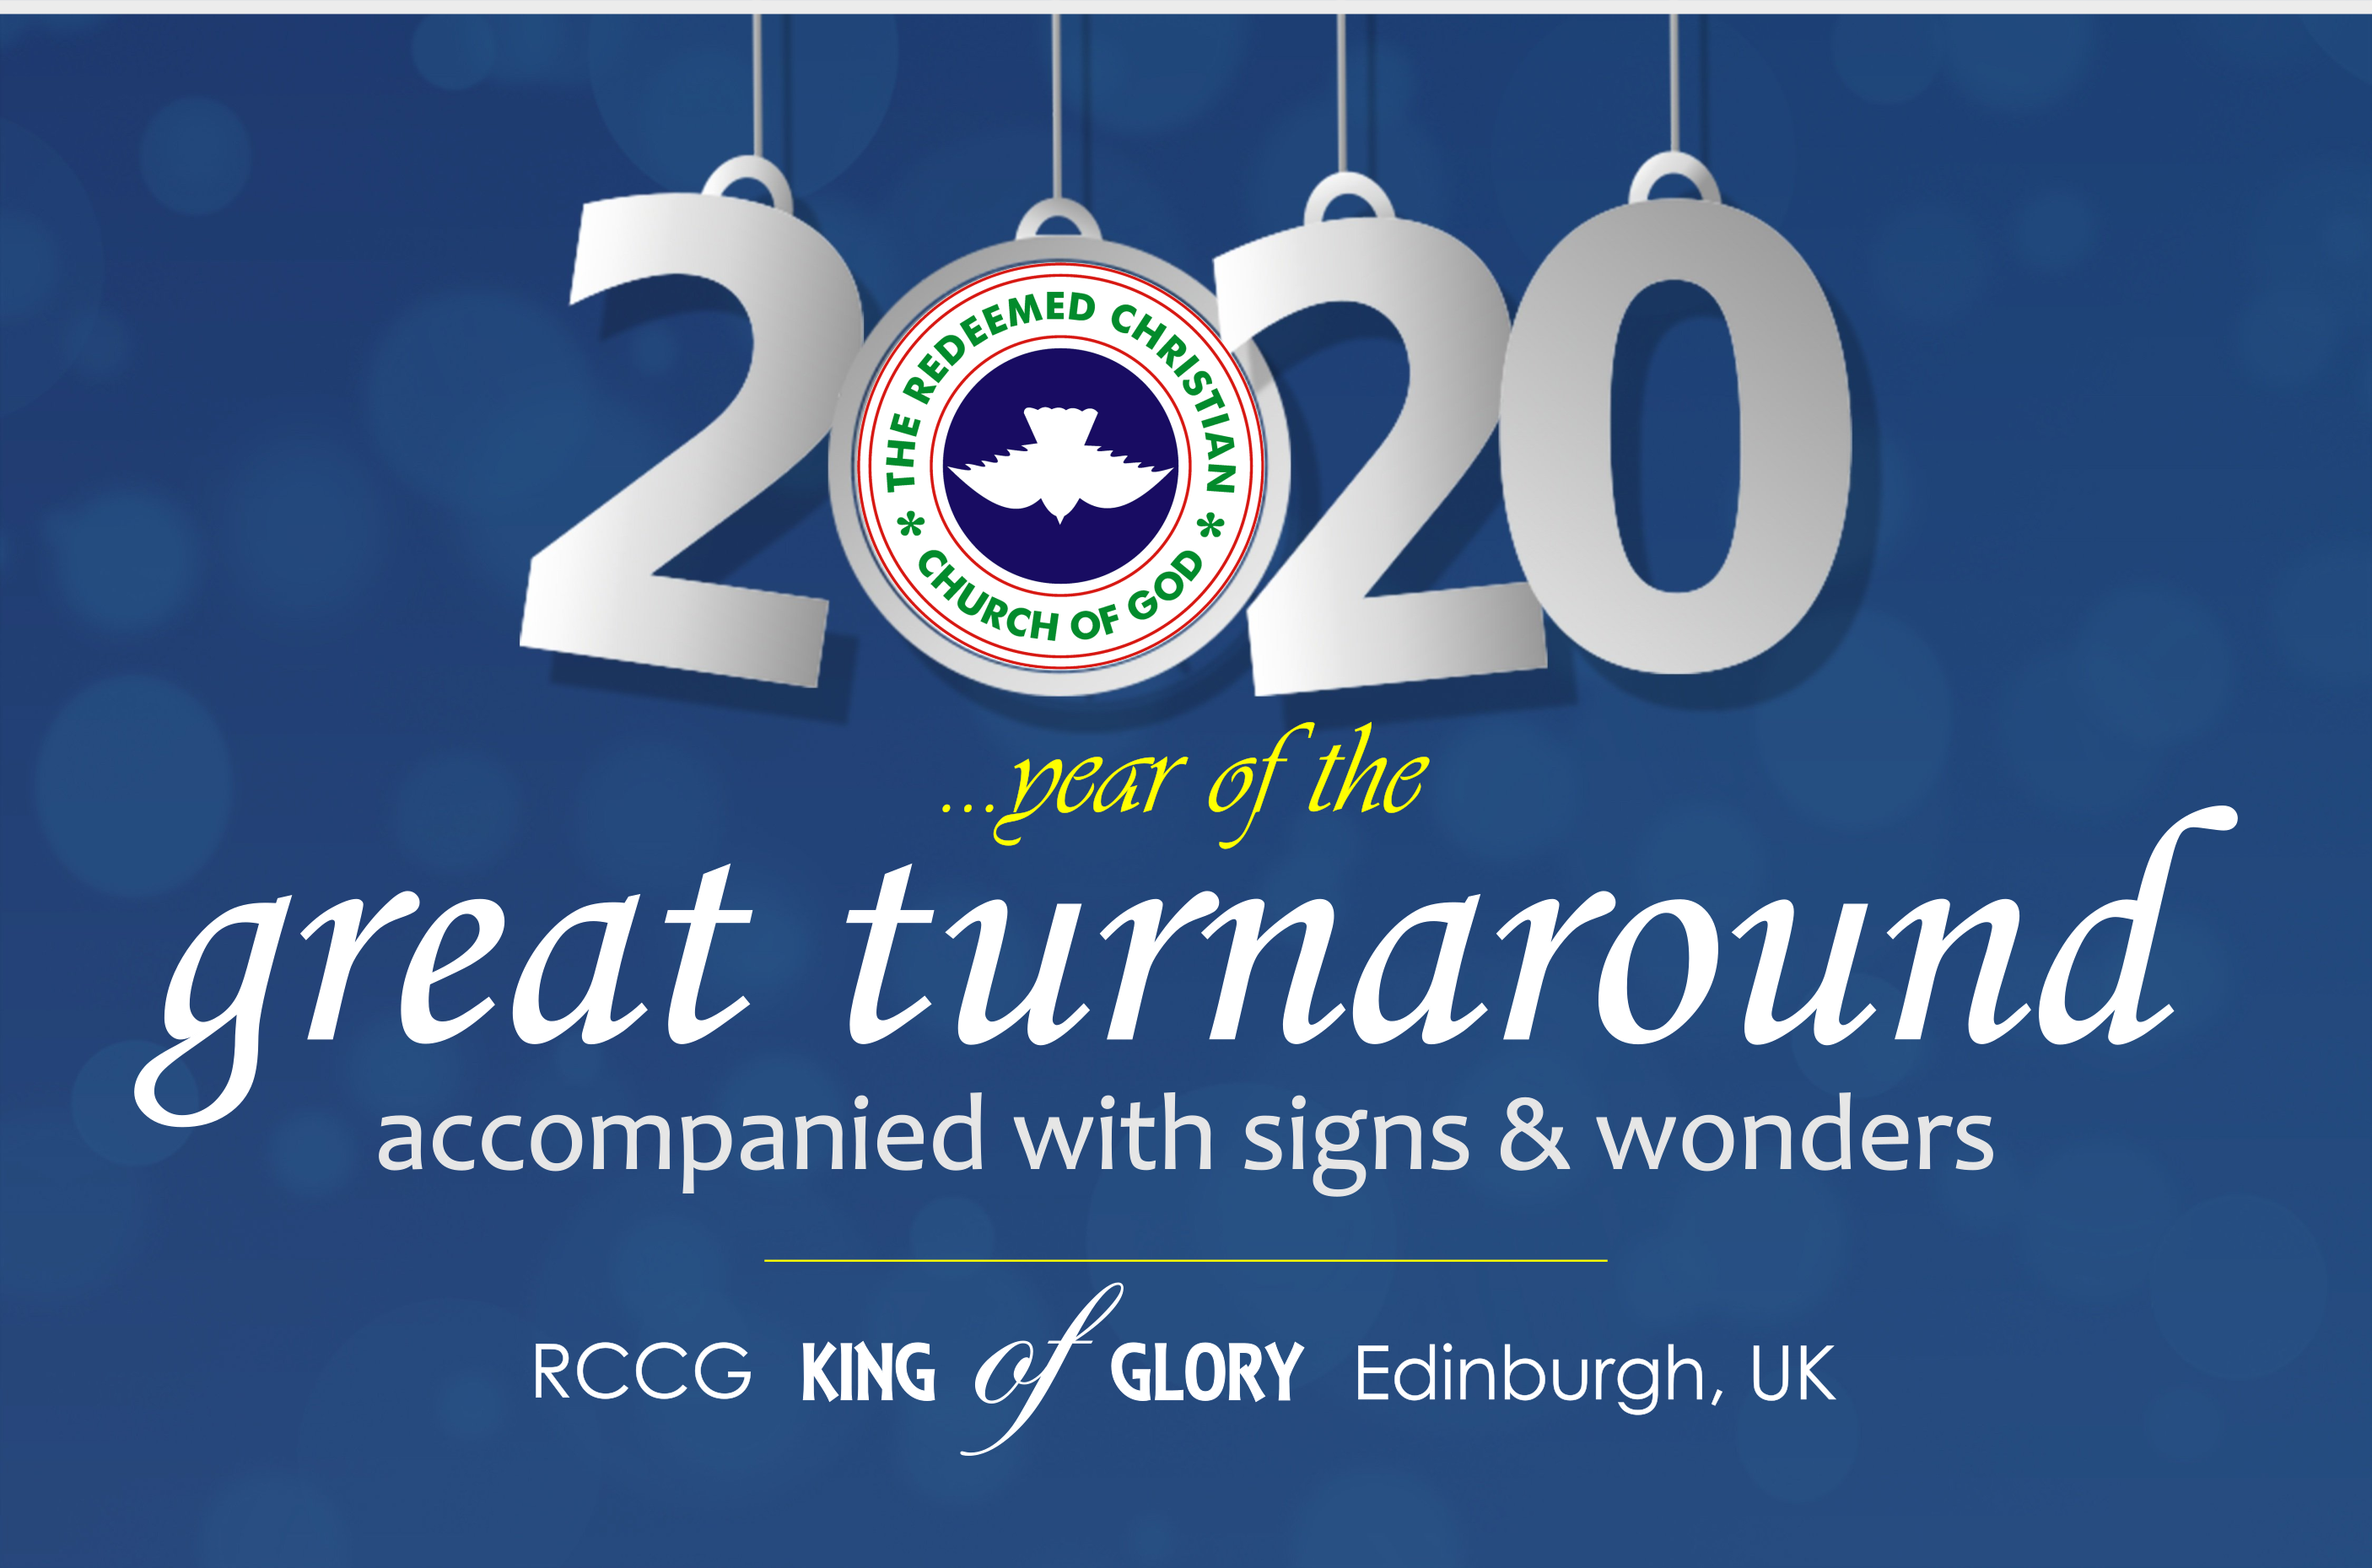 Year of a great turnaround accompanied with signs and wonders